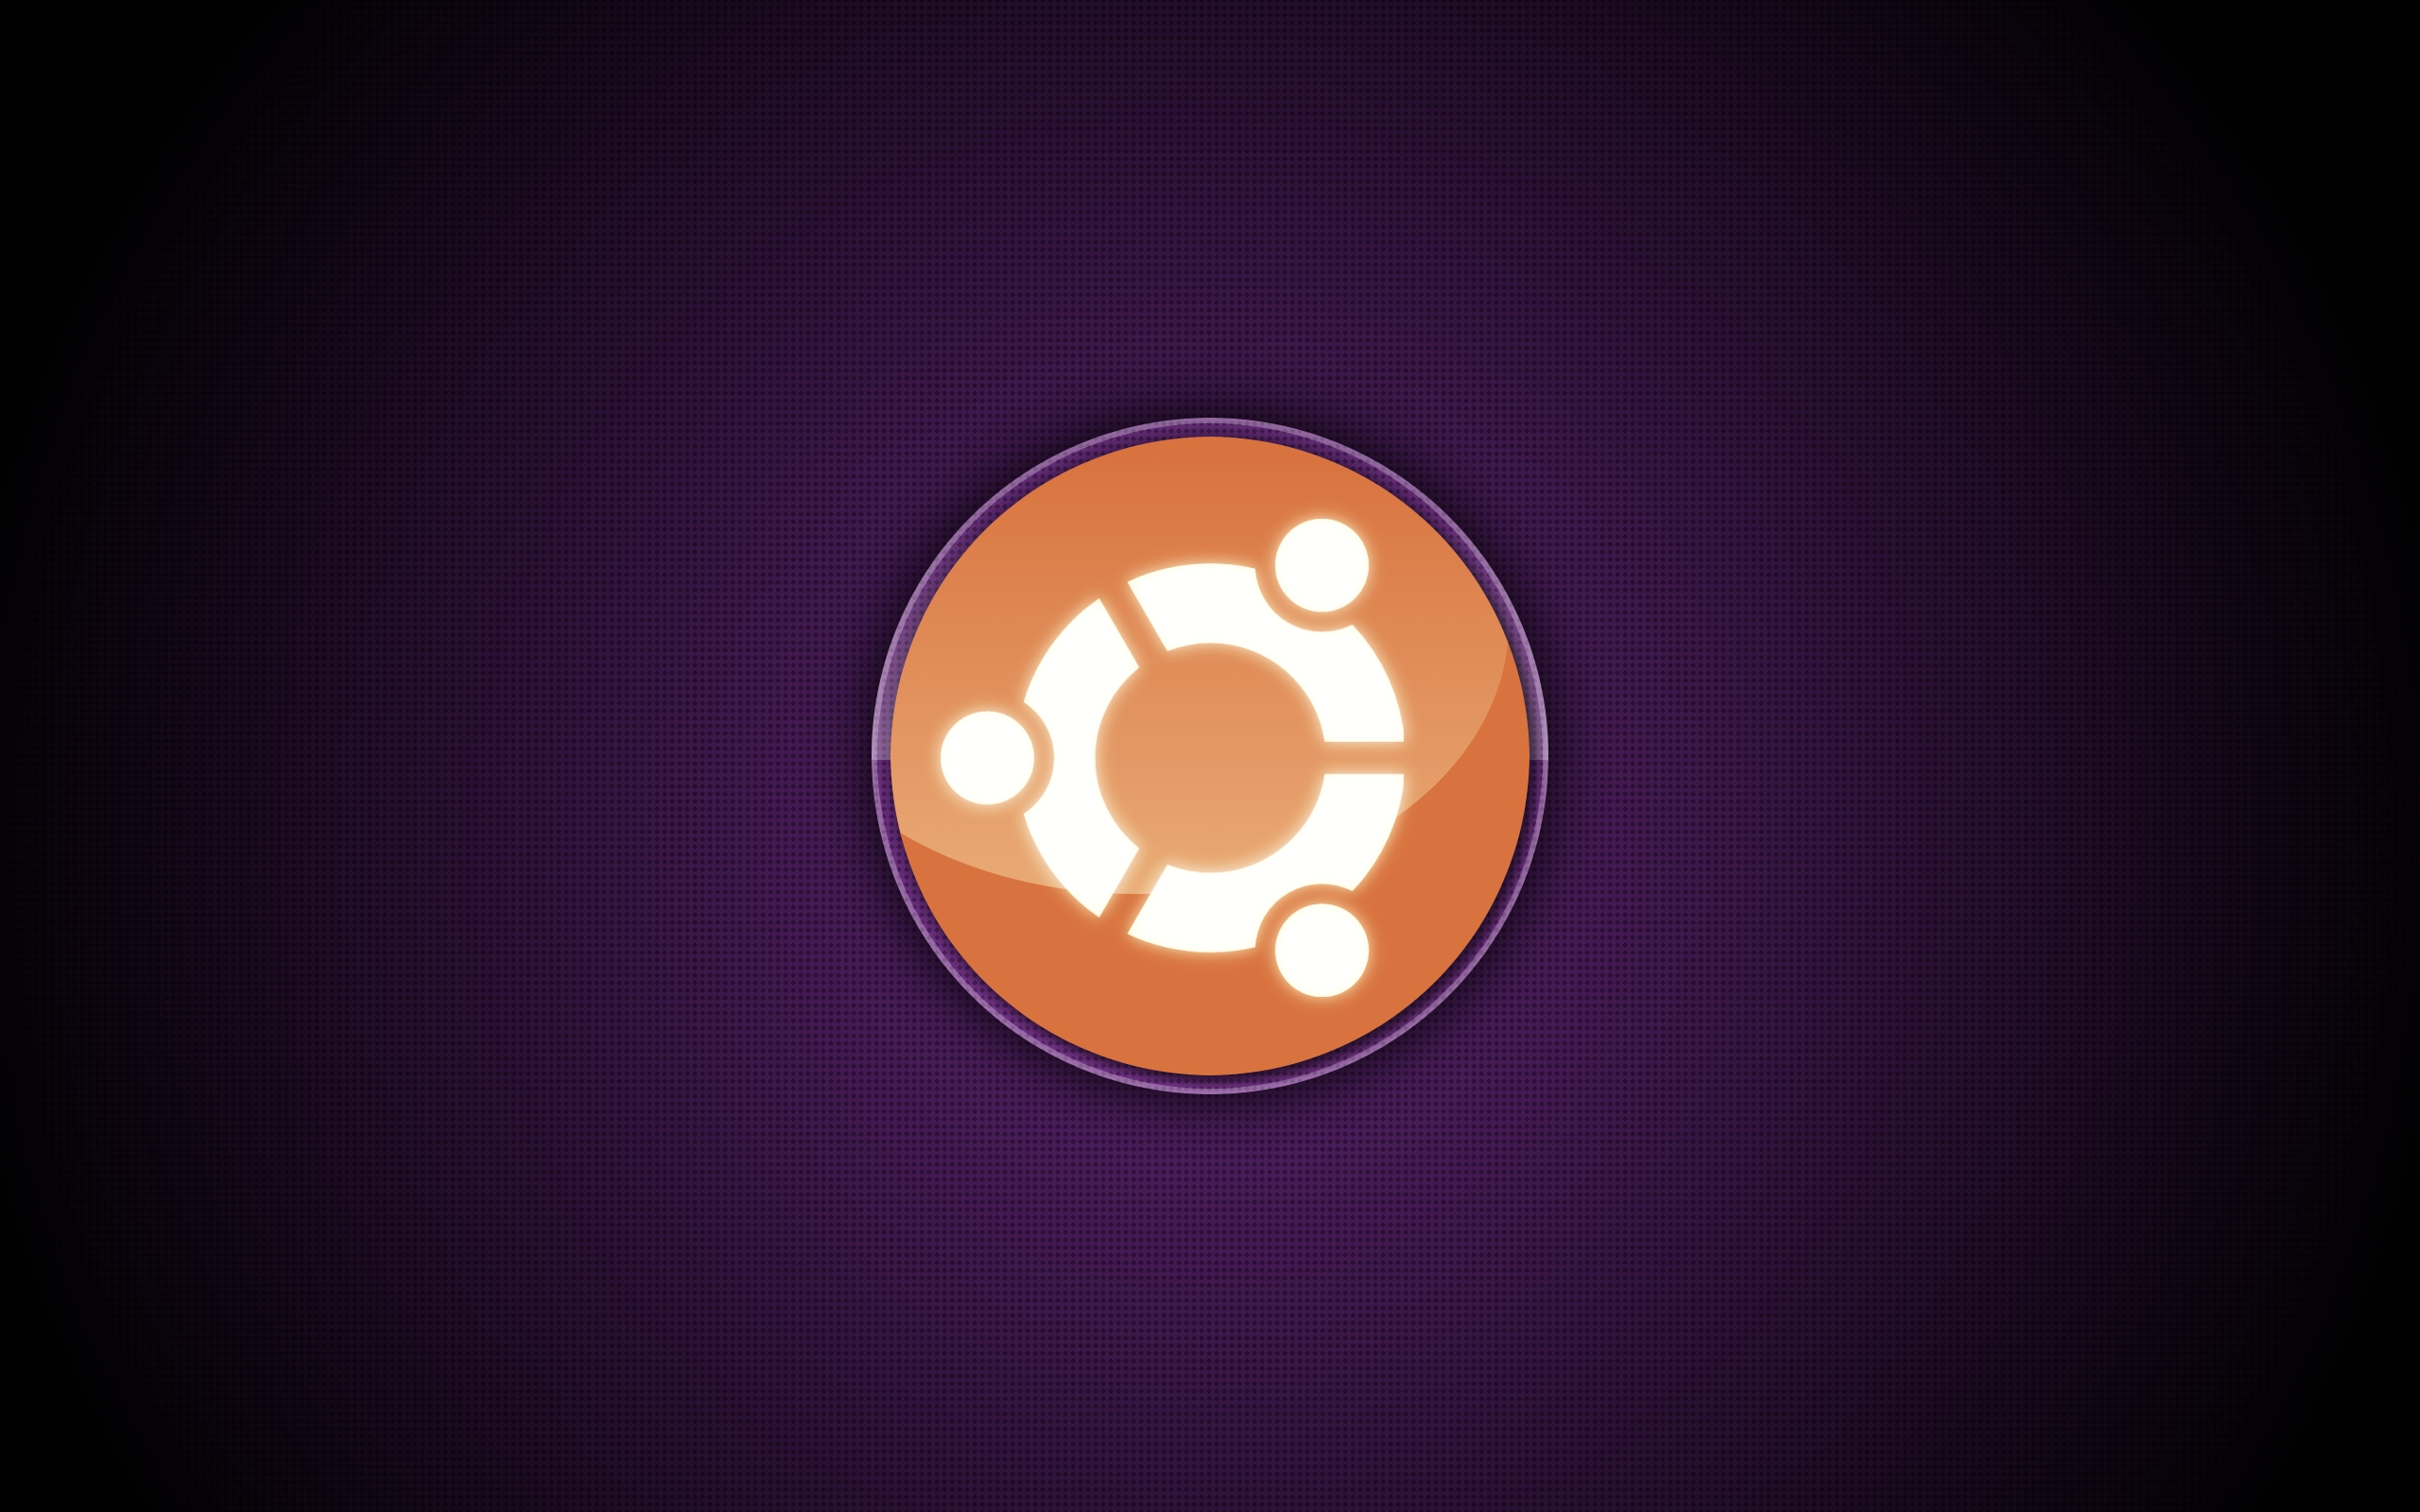 Ubuntu logo wallpaper by MrMassiveManMeat